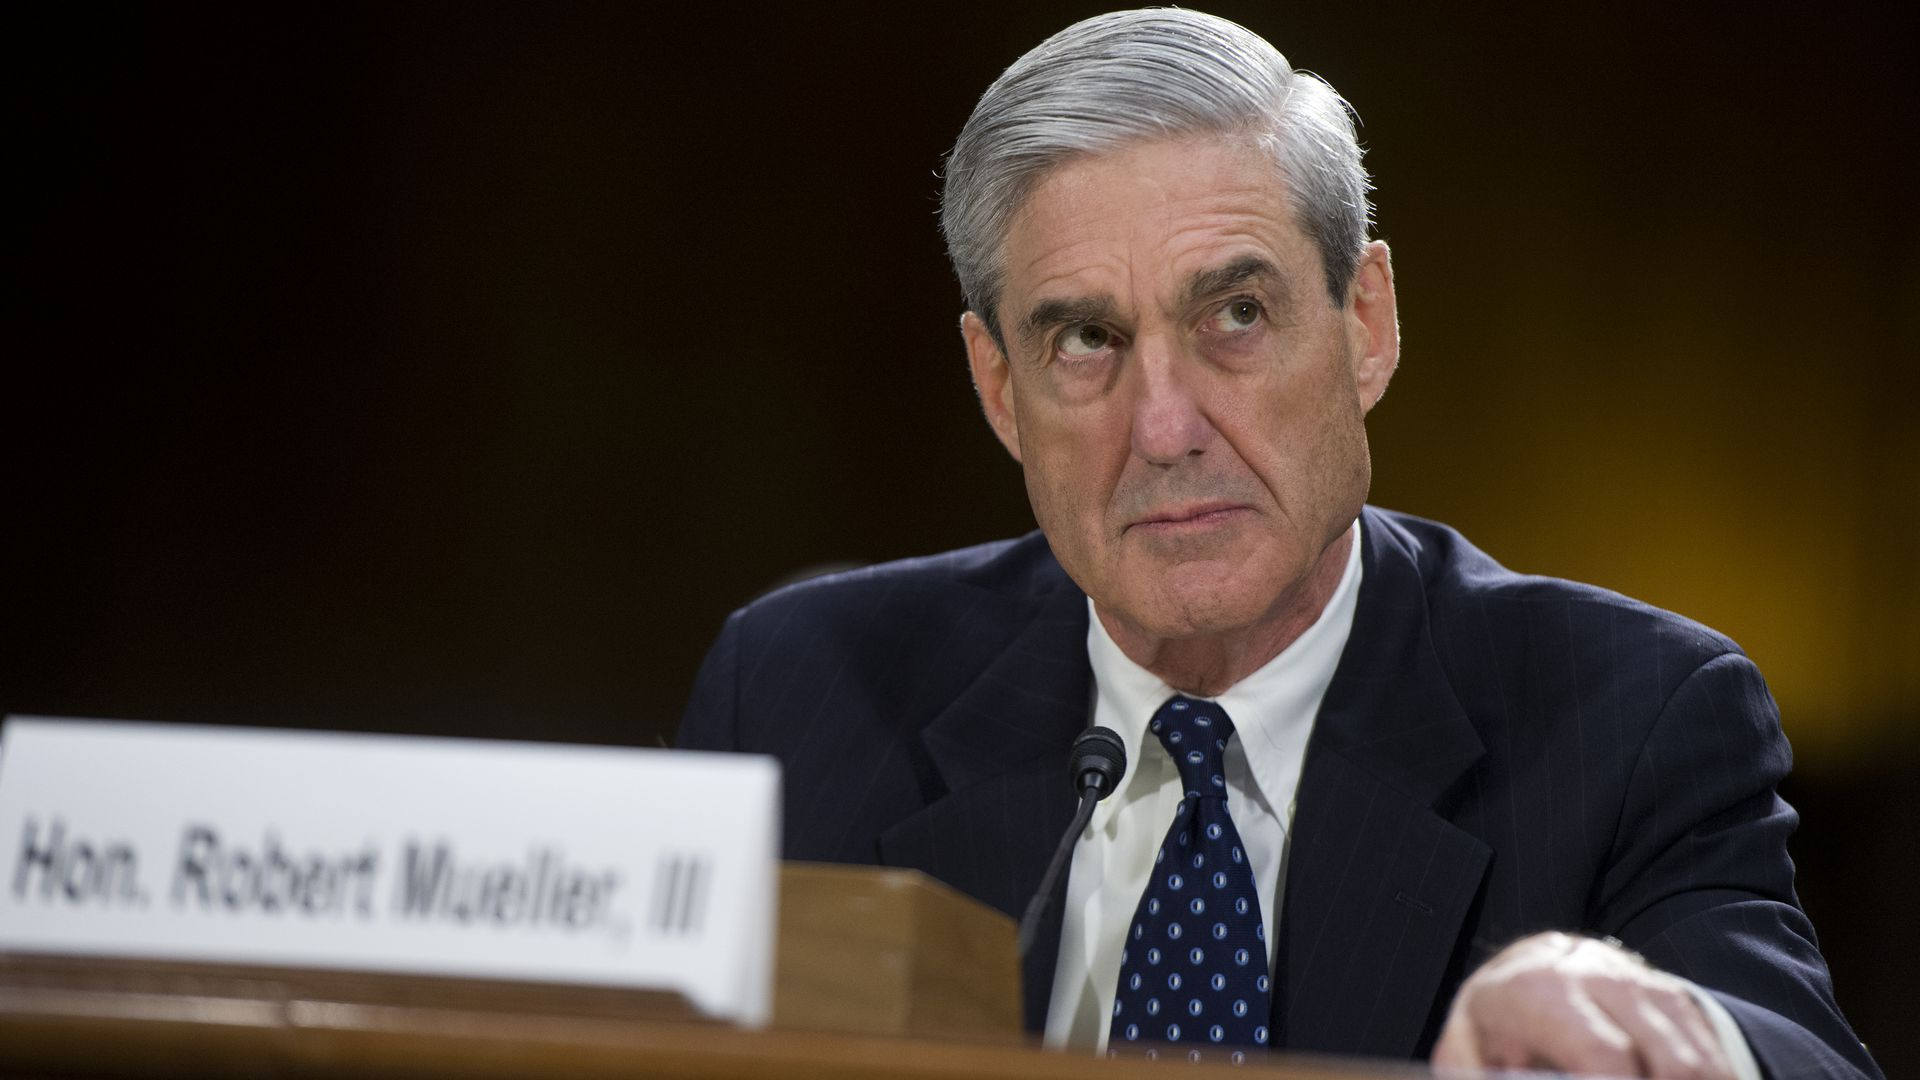 Mueller's team nervous for public testimony, citing unwanted appearance of partisanship